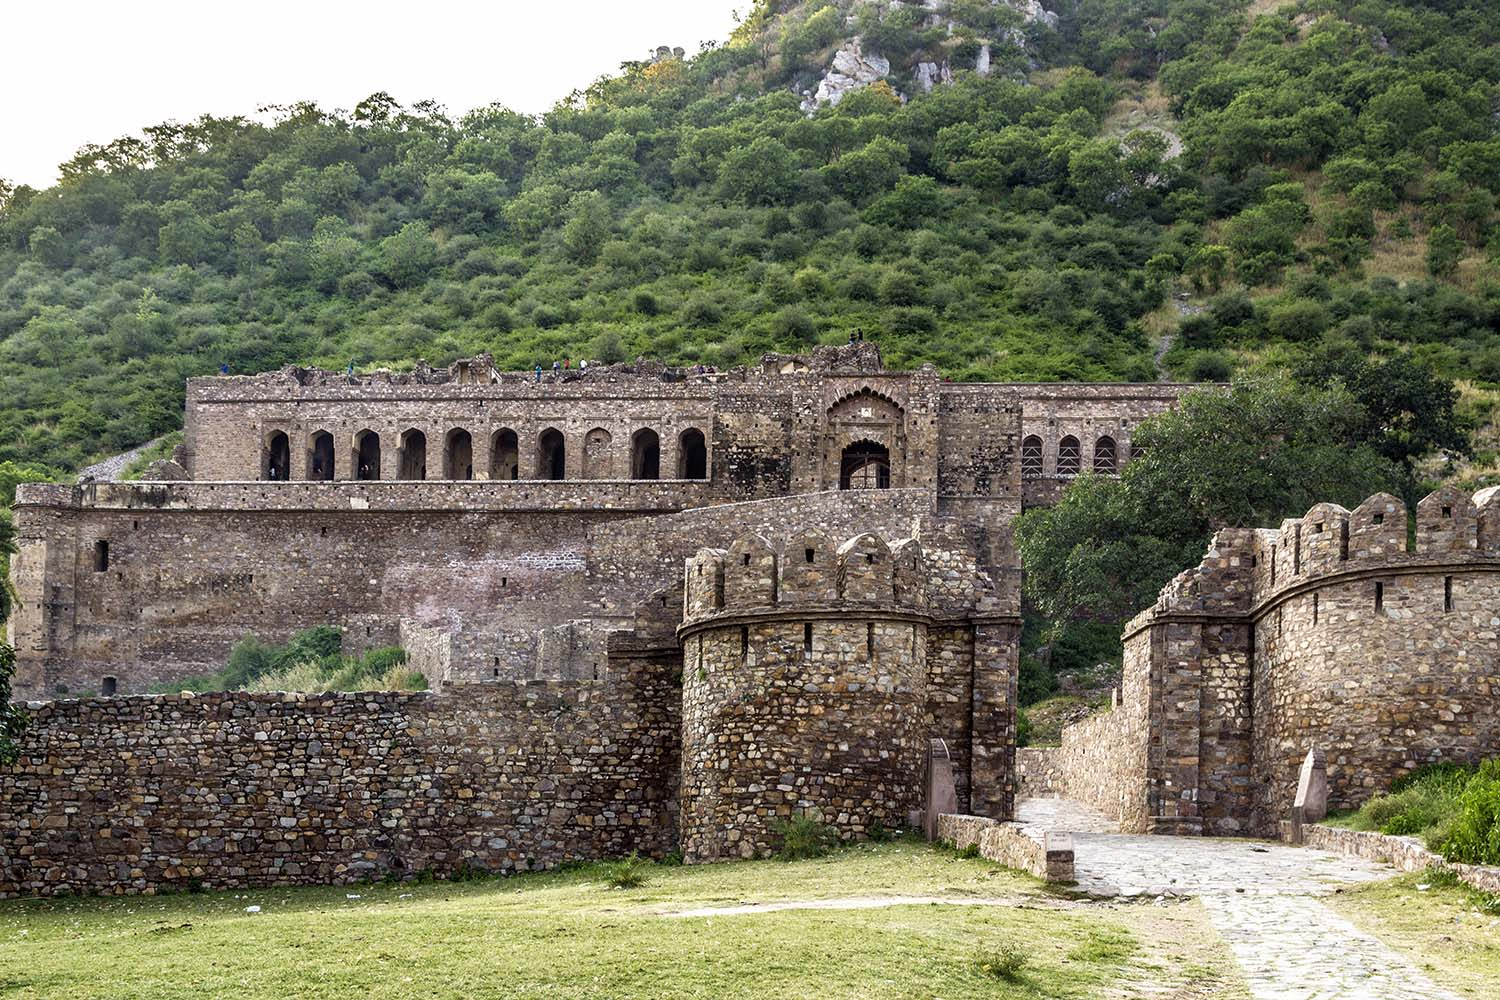 old Bhangarh Fort in India